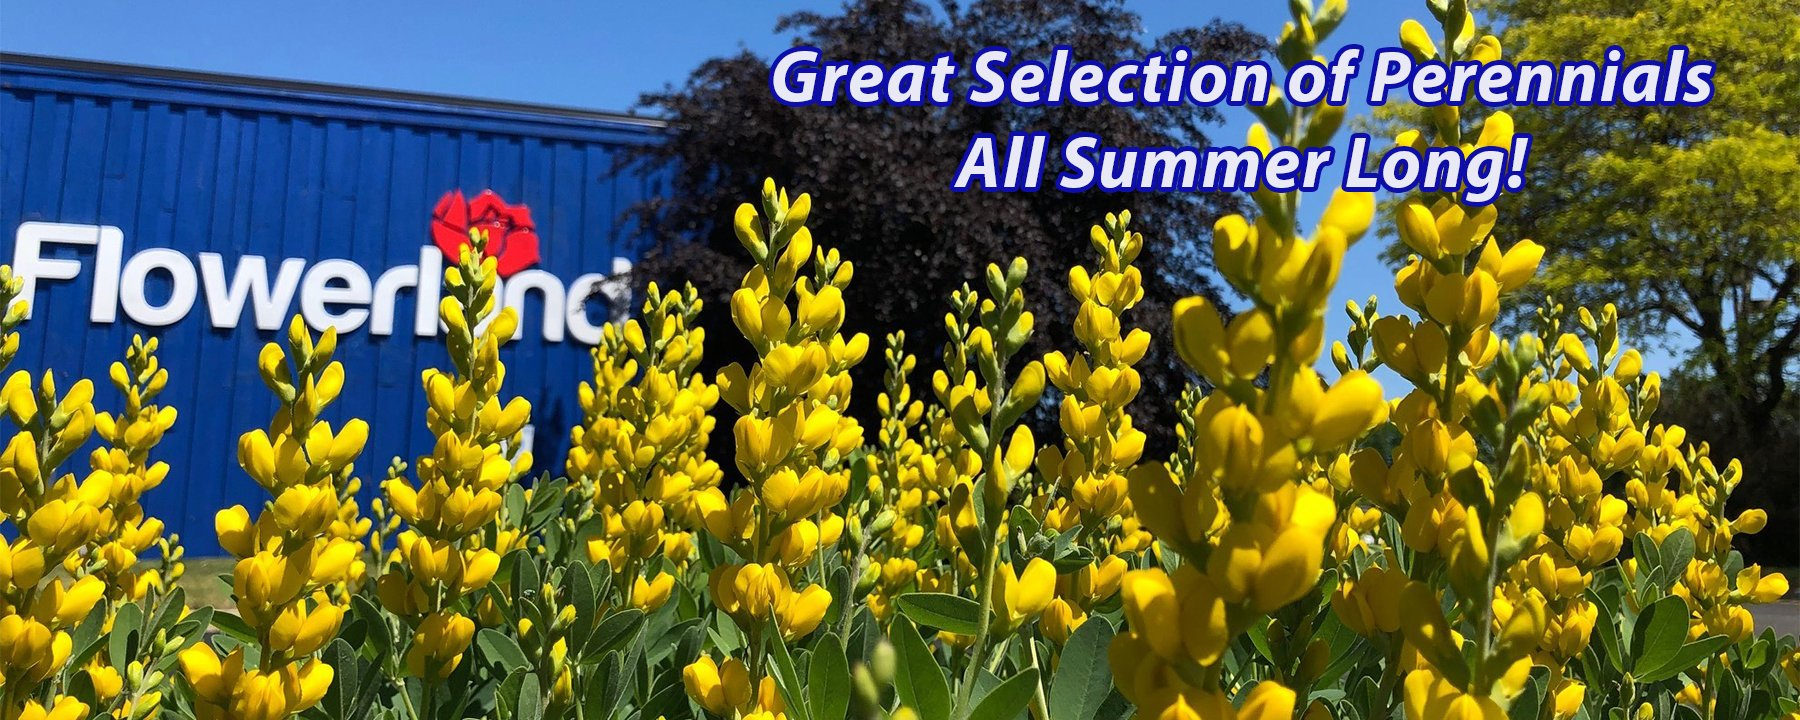 Great Selection of Perennials at Flowerland